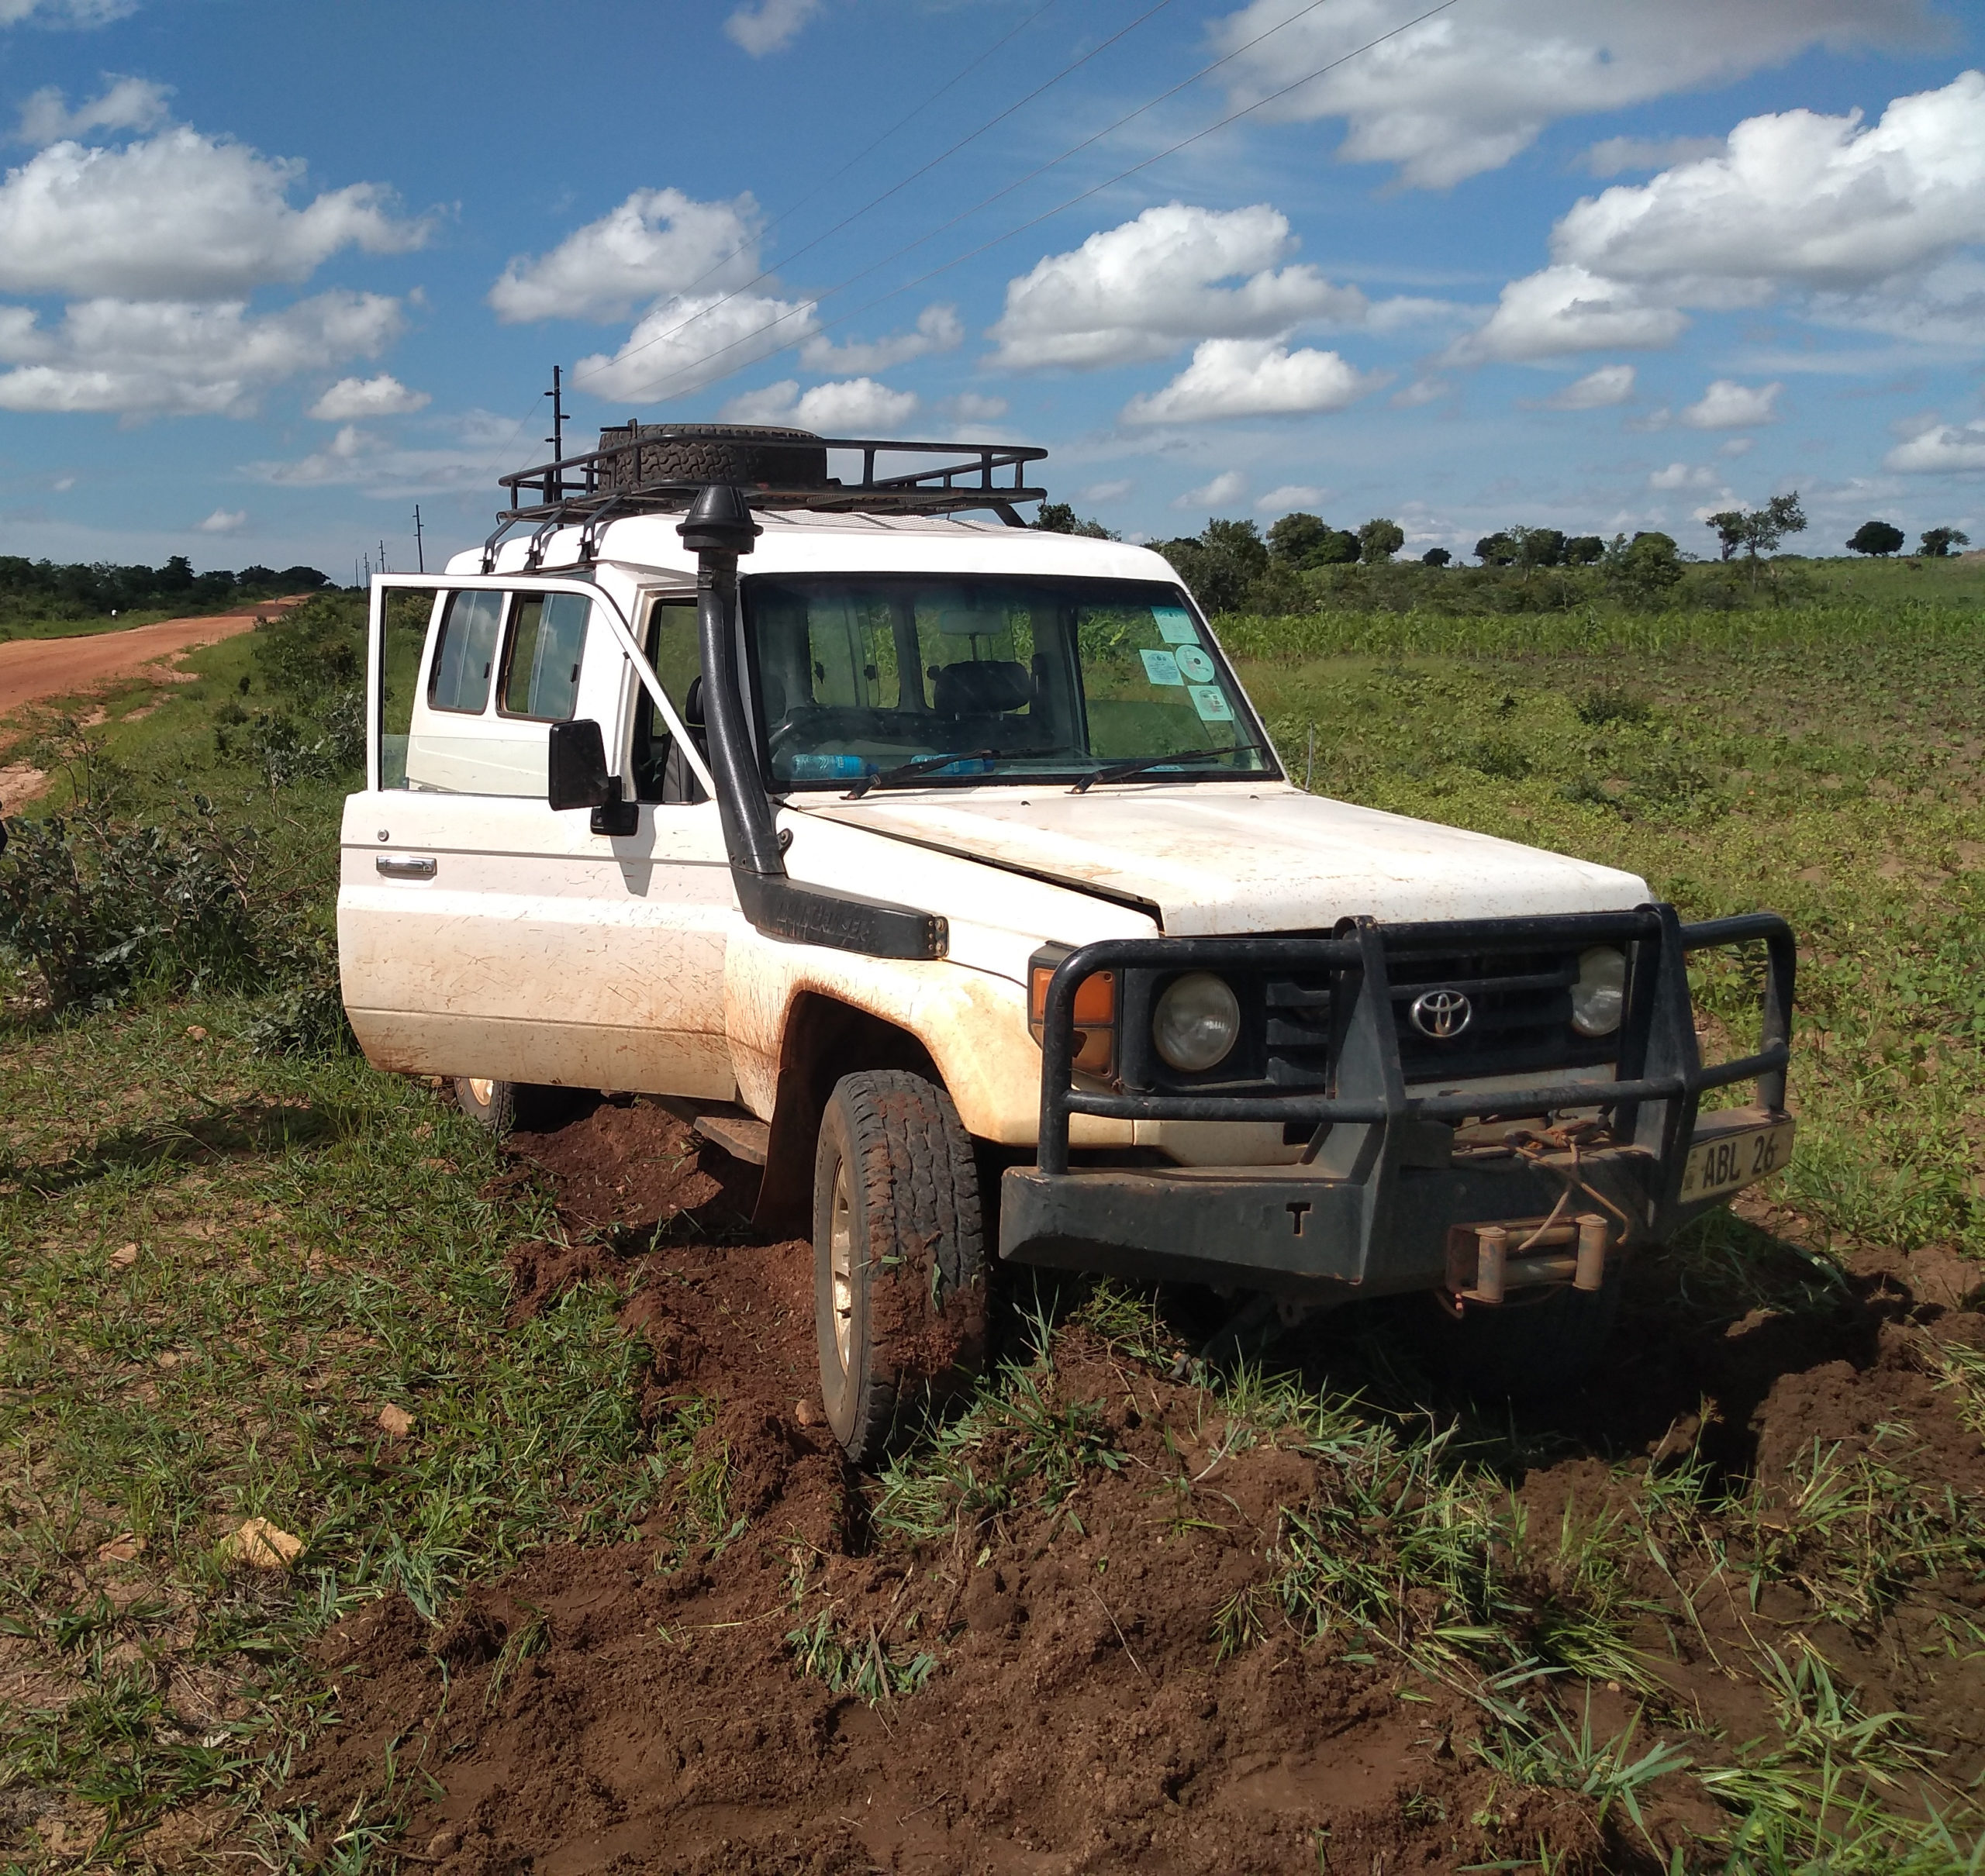 a Land Rover stuck in the mud